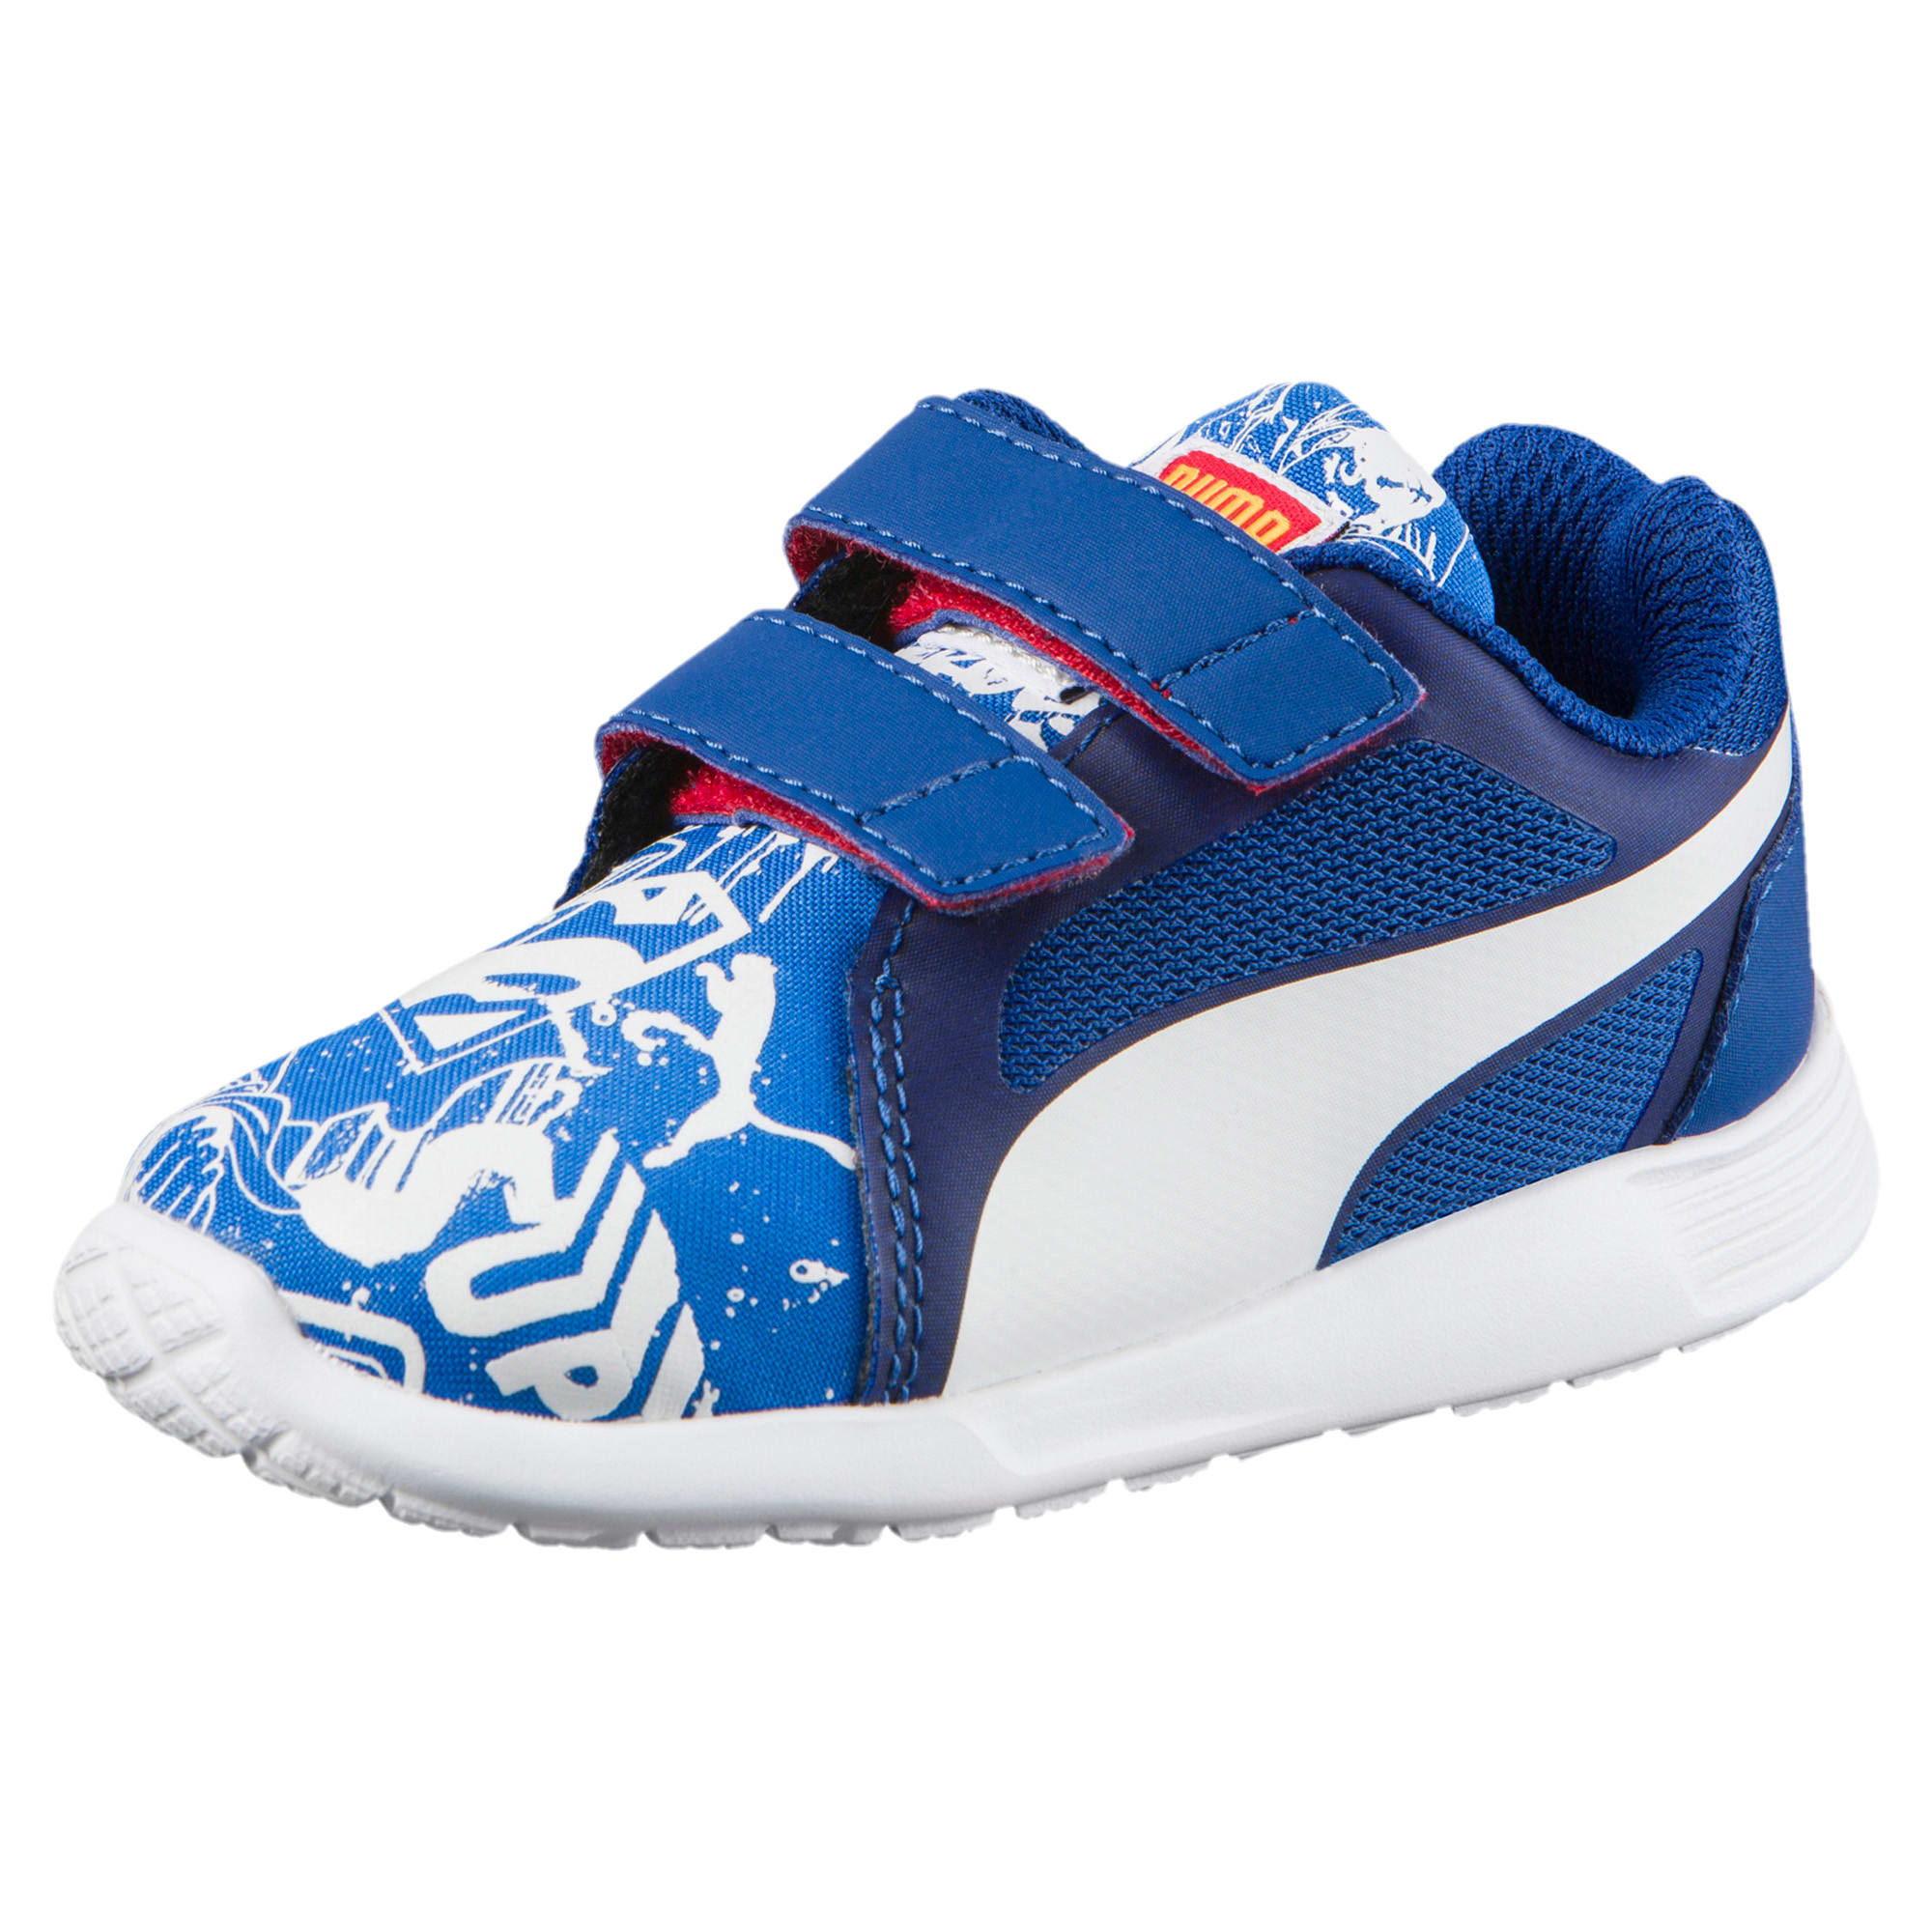 PUMA ST Trainer Evo Superman PS Sneaker